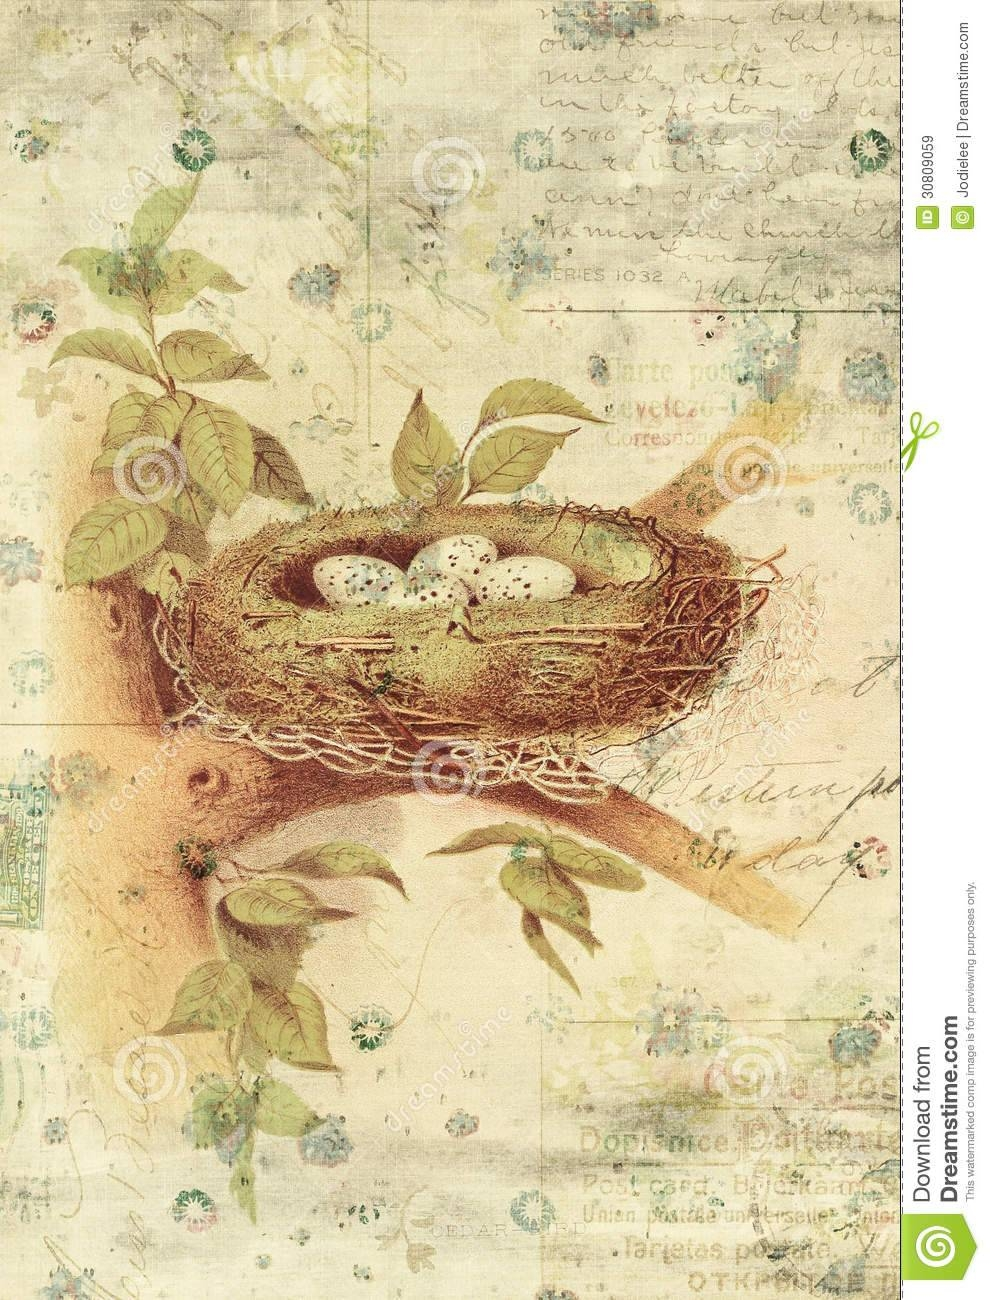 Nest And Bird Eggs Botanical Vintage Style Wall Art With Textured Intended For Most Recently Released Vintage Style Wall Art (View 15 of 20)